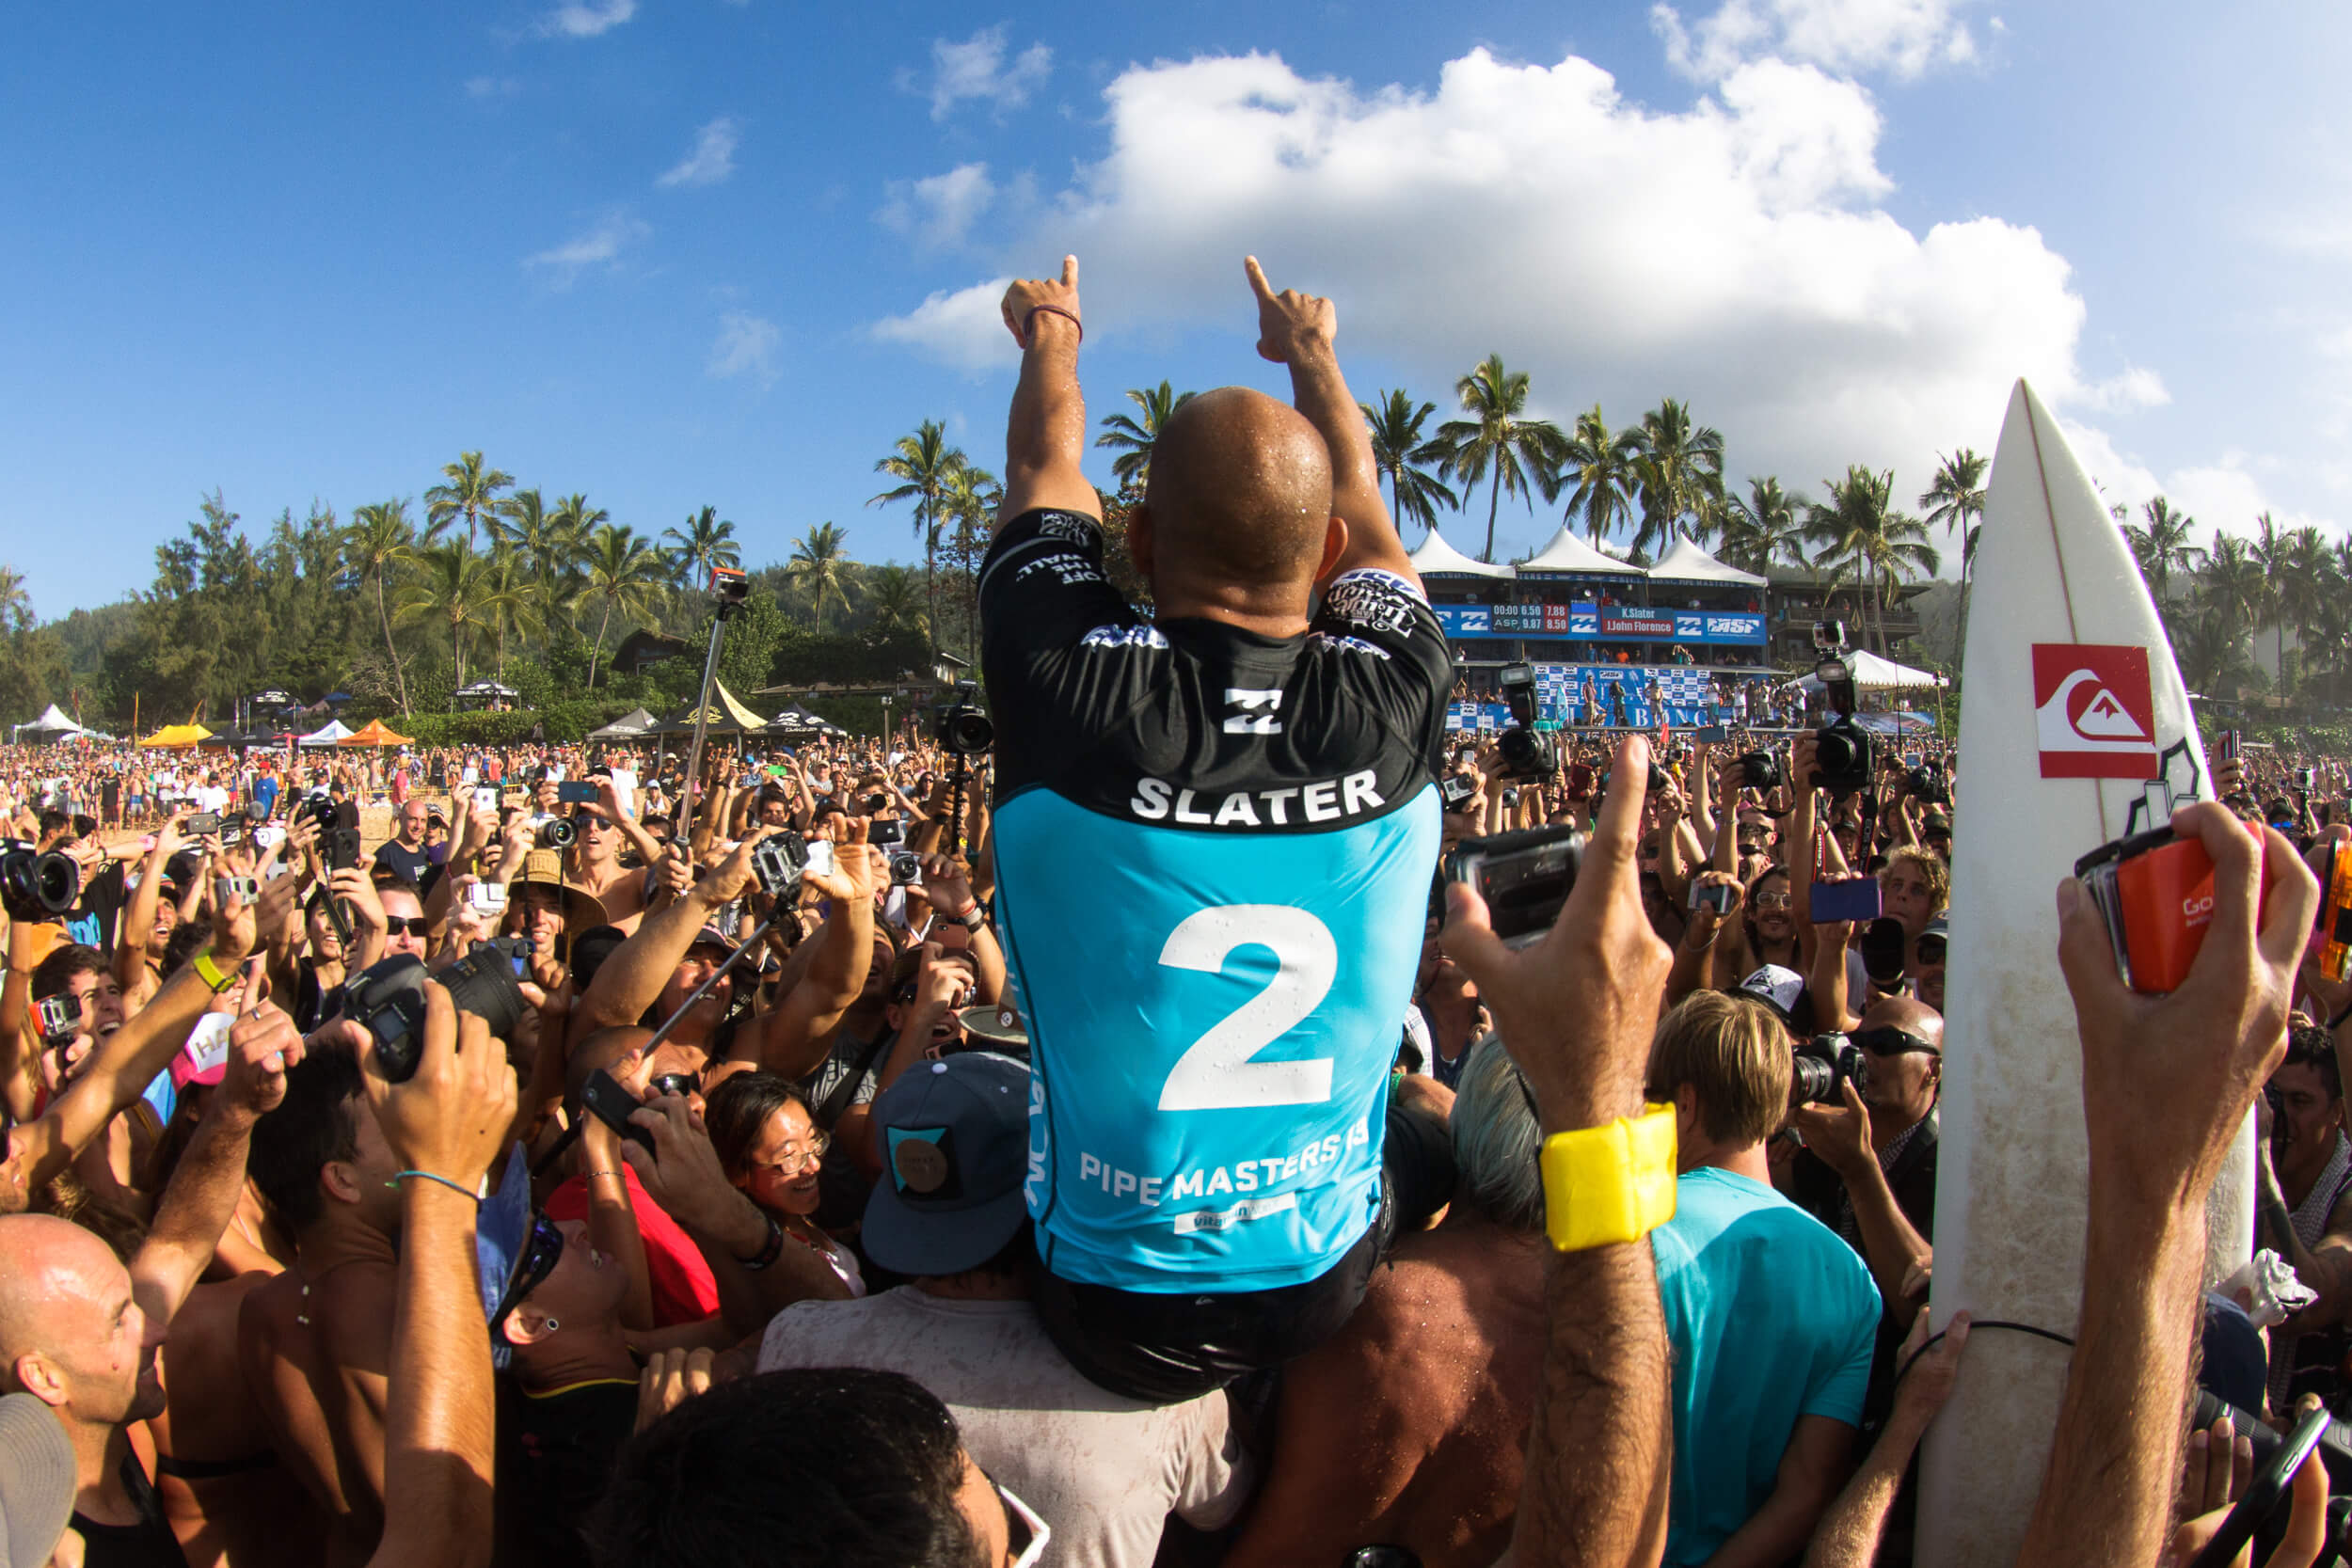 2013 PIPE MASTERS | SURFER MAGAZINE